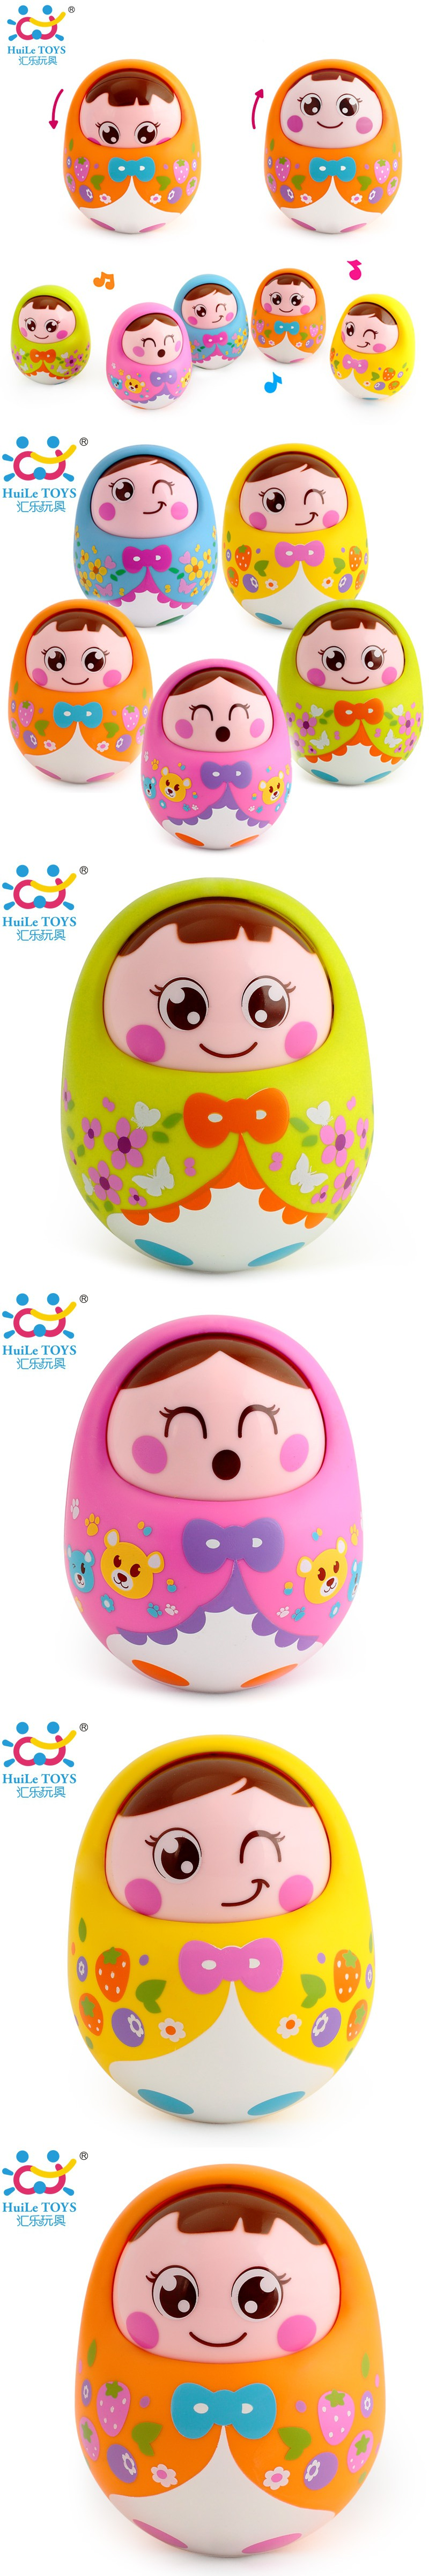 Kids Musical Nevalyashka Tumbler Toy Infant Cartoon Doll Roly poly